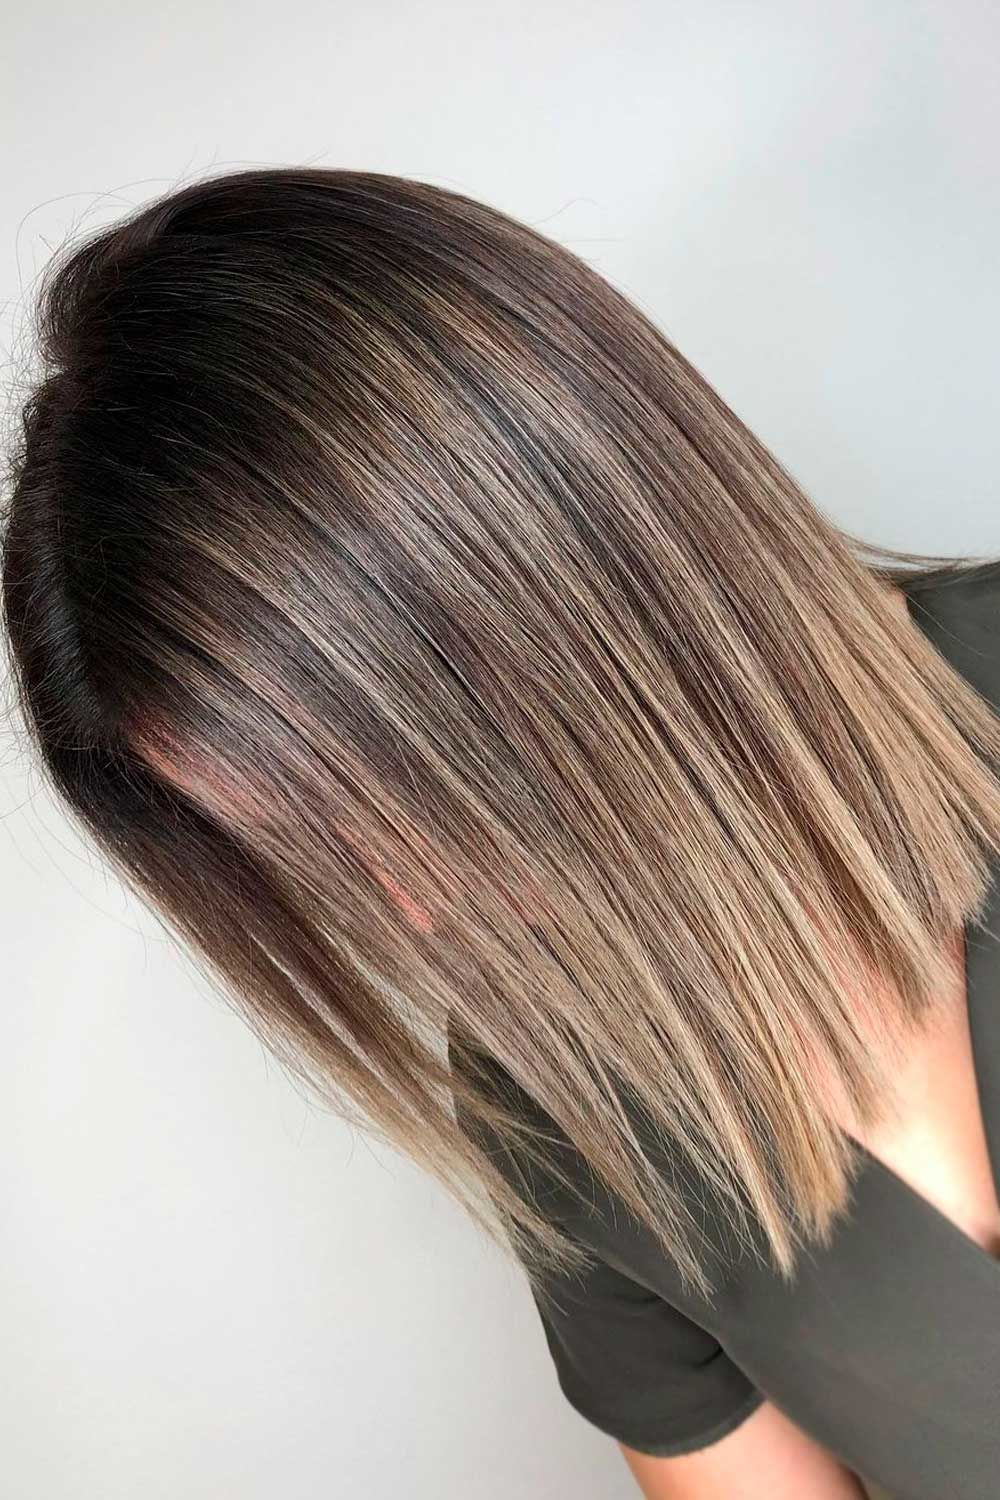 Brown To Wheat Hair, short ombre hair, short hair ombre, ombre with short hair,